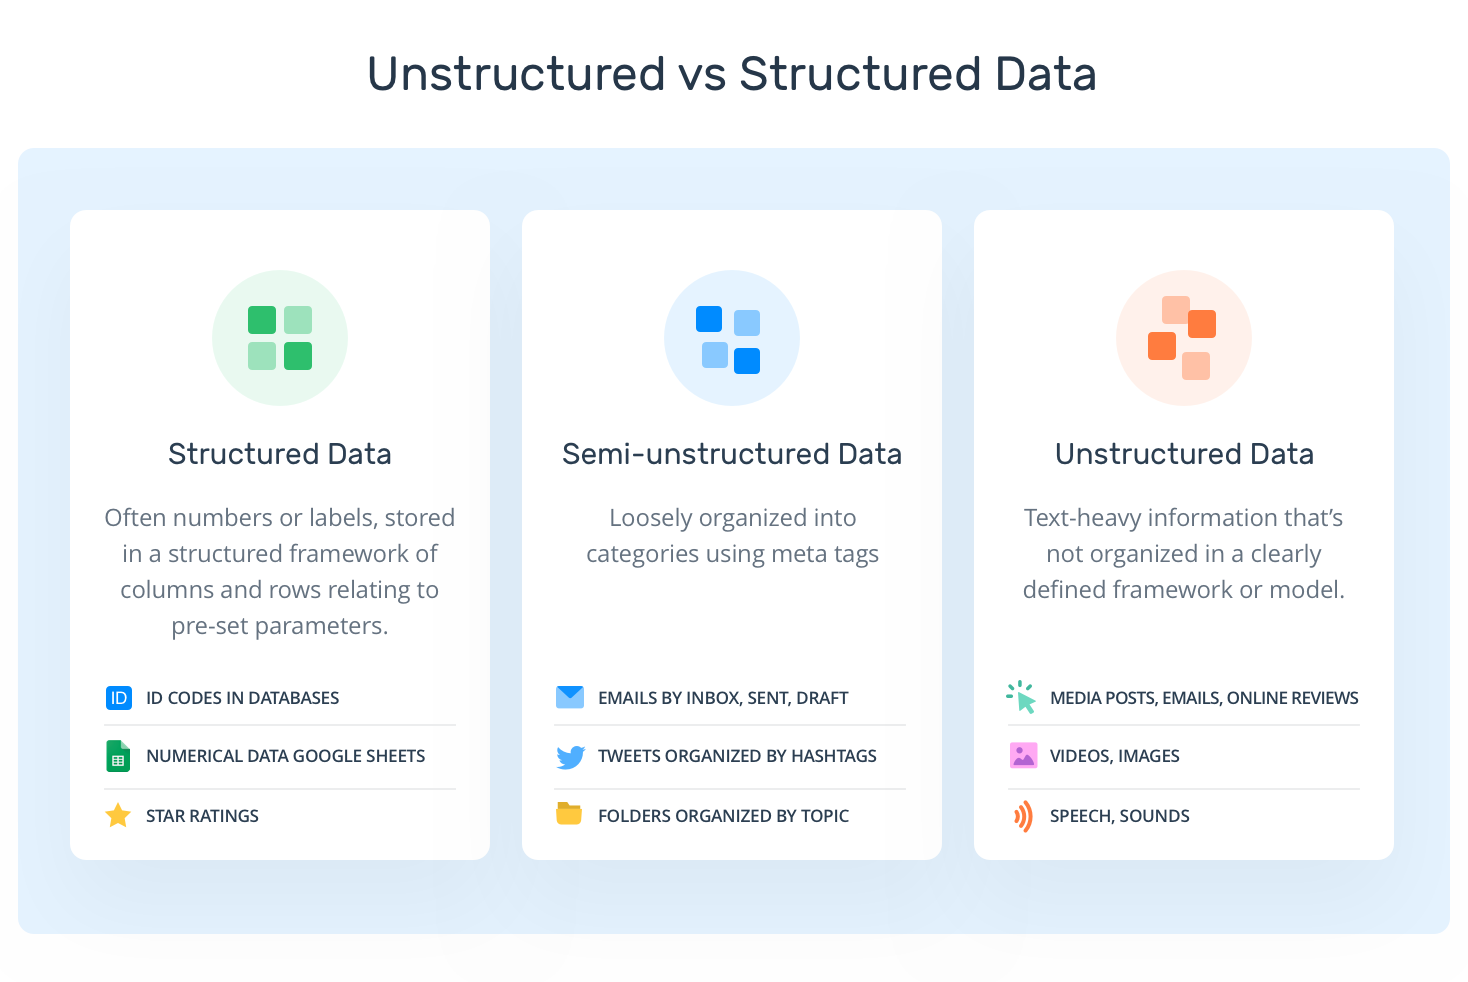 A chart comparing Structured, Semi-Structured, and Unstructured data.